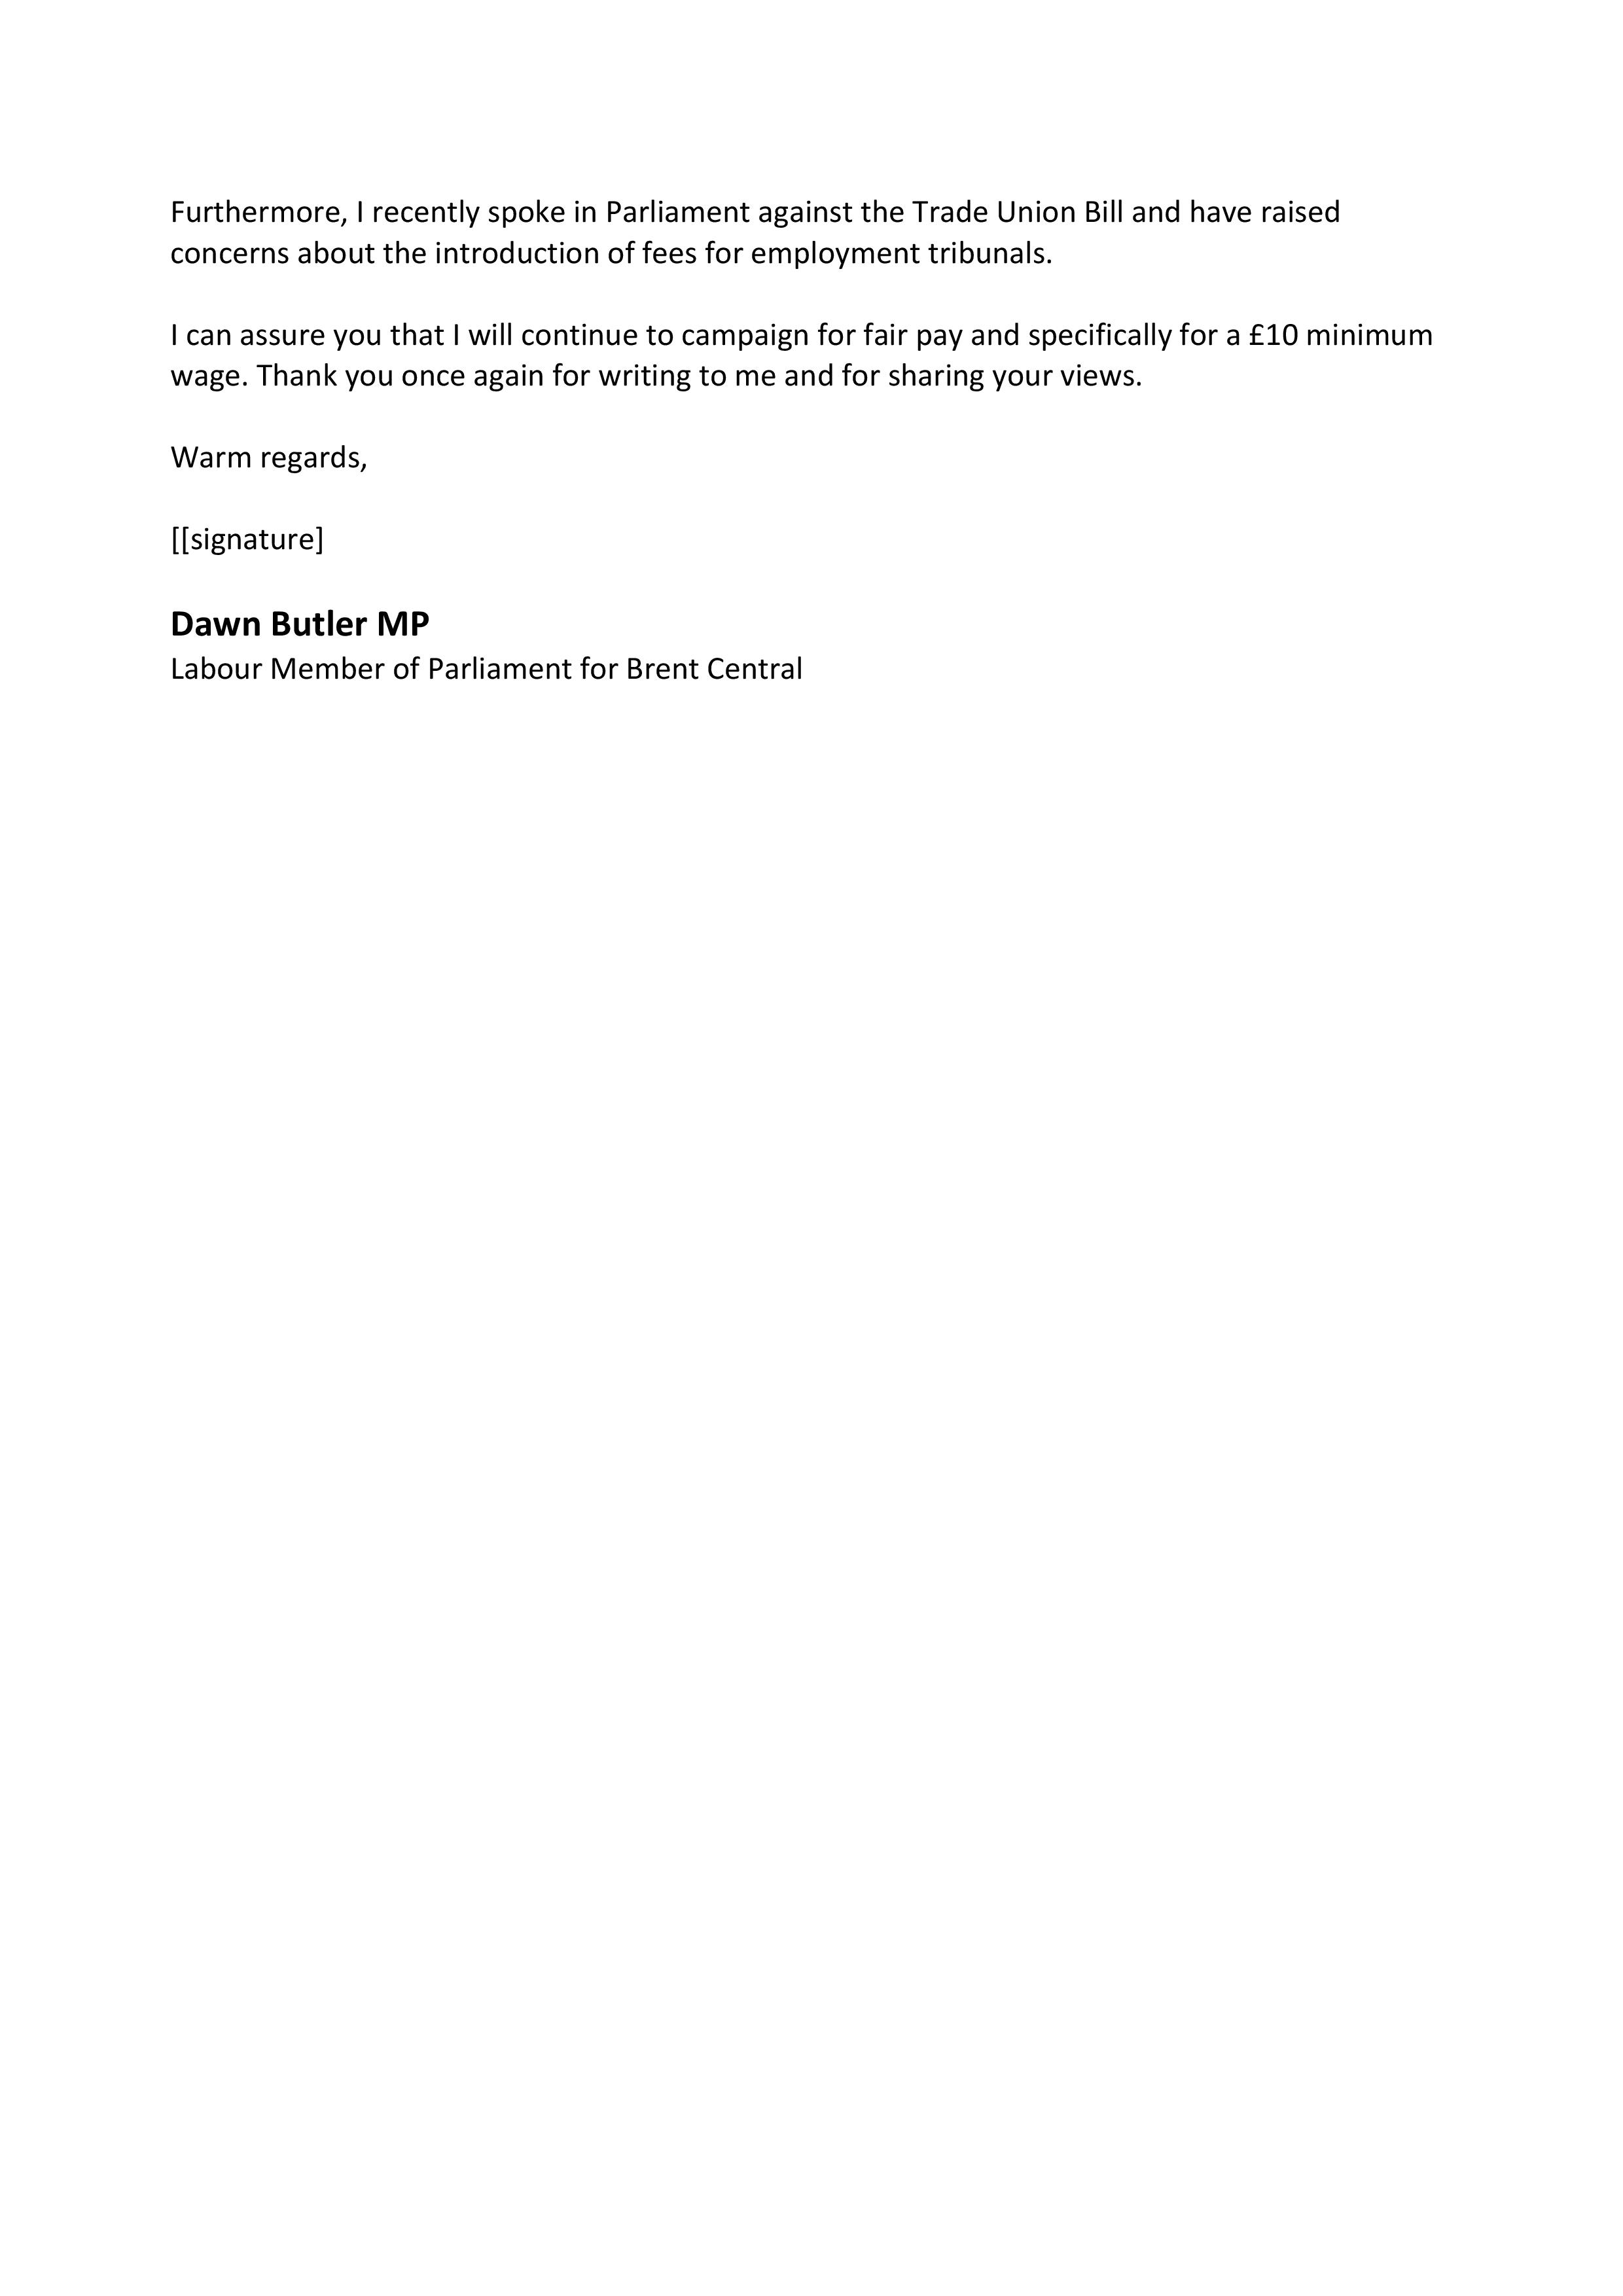 National_Minimum_Wage_letter-page-002.jpg